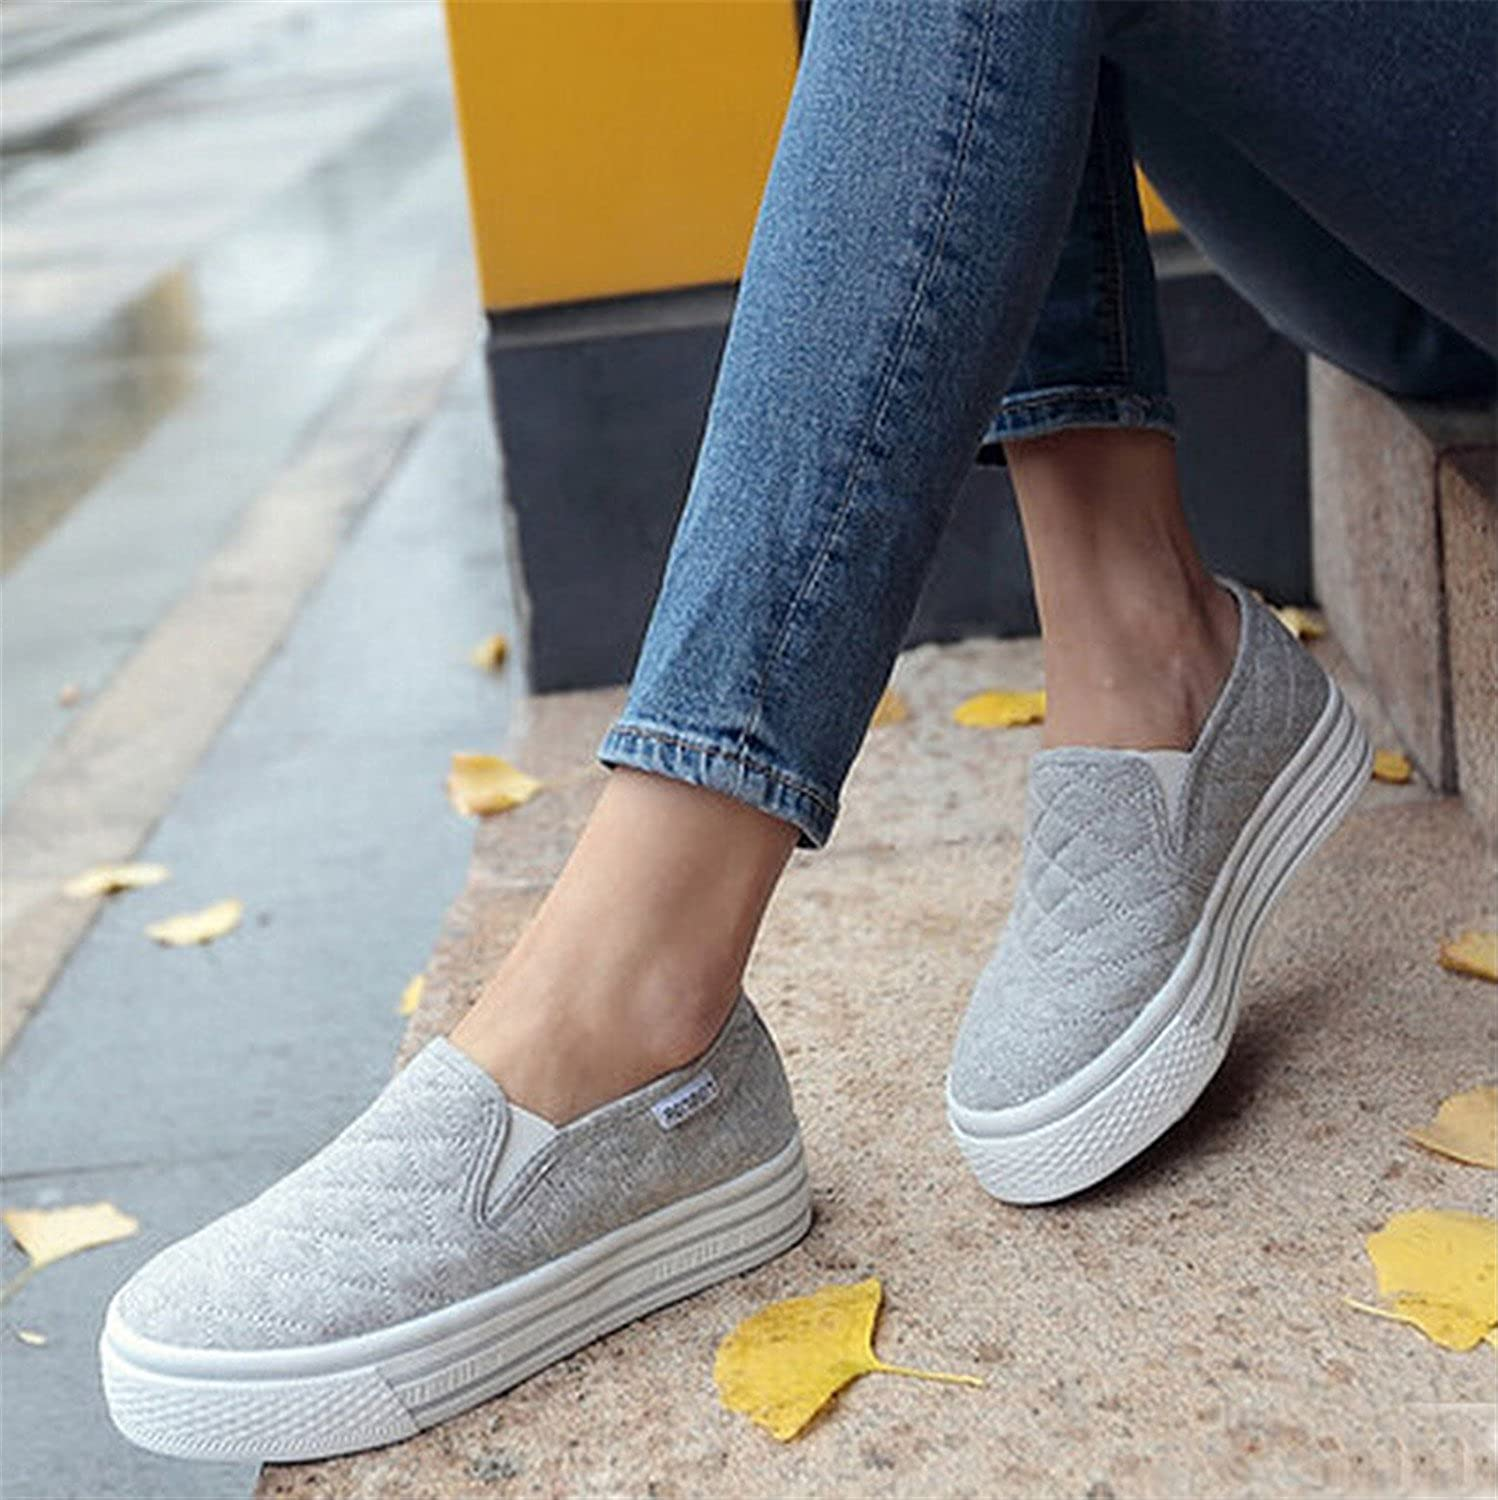 Henraly Women Loafers Casual Flats Shoes Round Toe Fashion Platform Loafer Shoes Autumn Comfort White Women Shoes 7D31